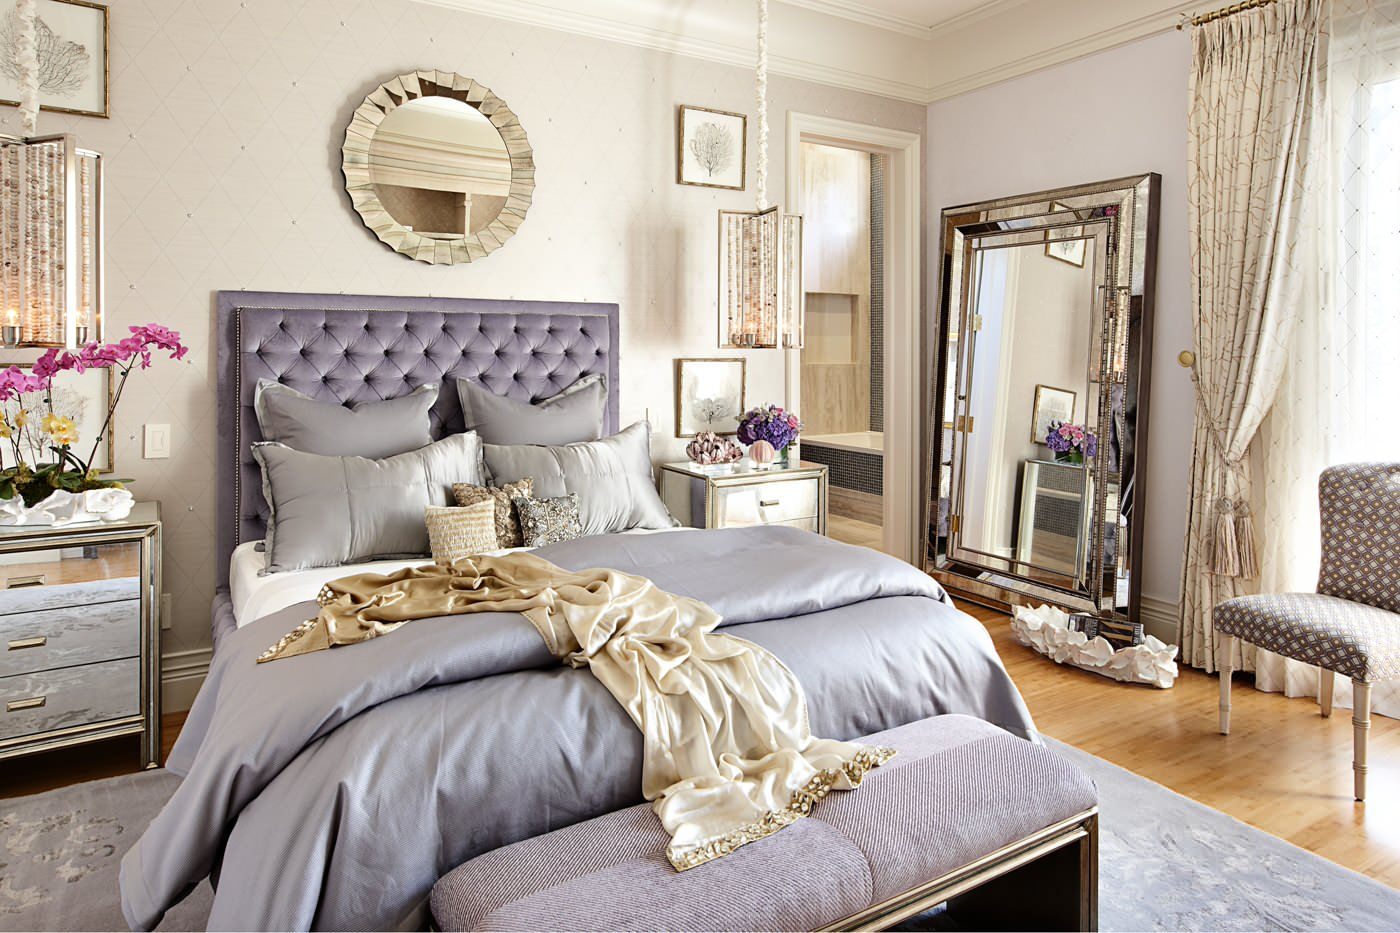 las vegas bedroom purple princess adult idea shop room ideas mirror nightstand wall mirror silver houzz. Interior Design Ideas. Home Design Ideas